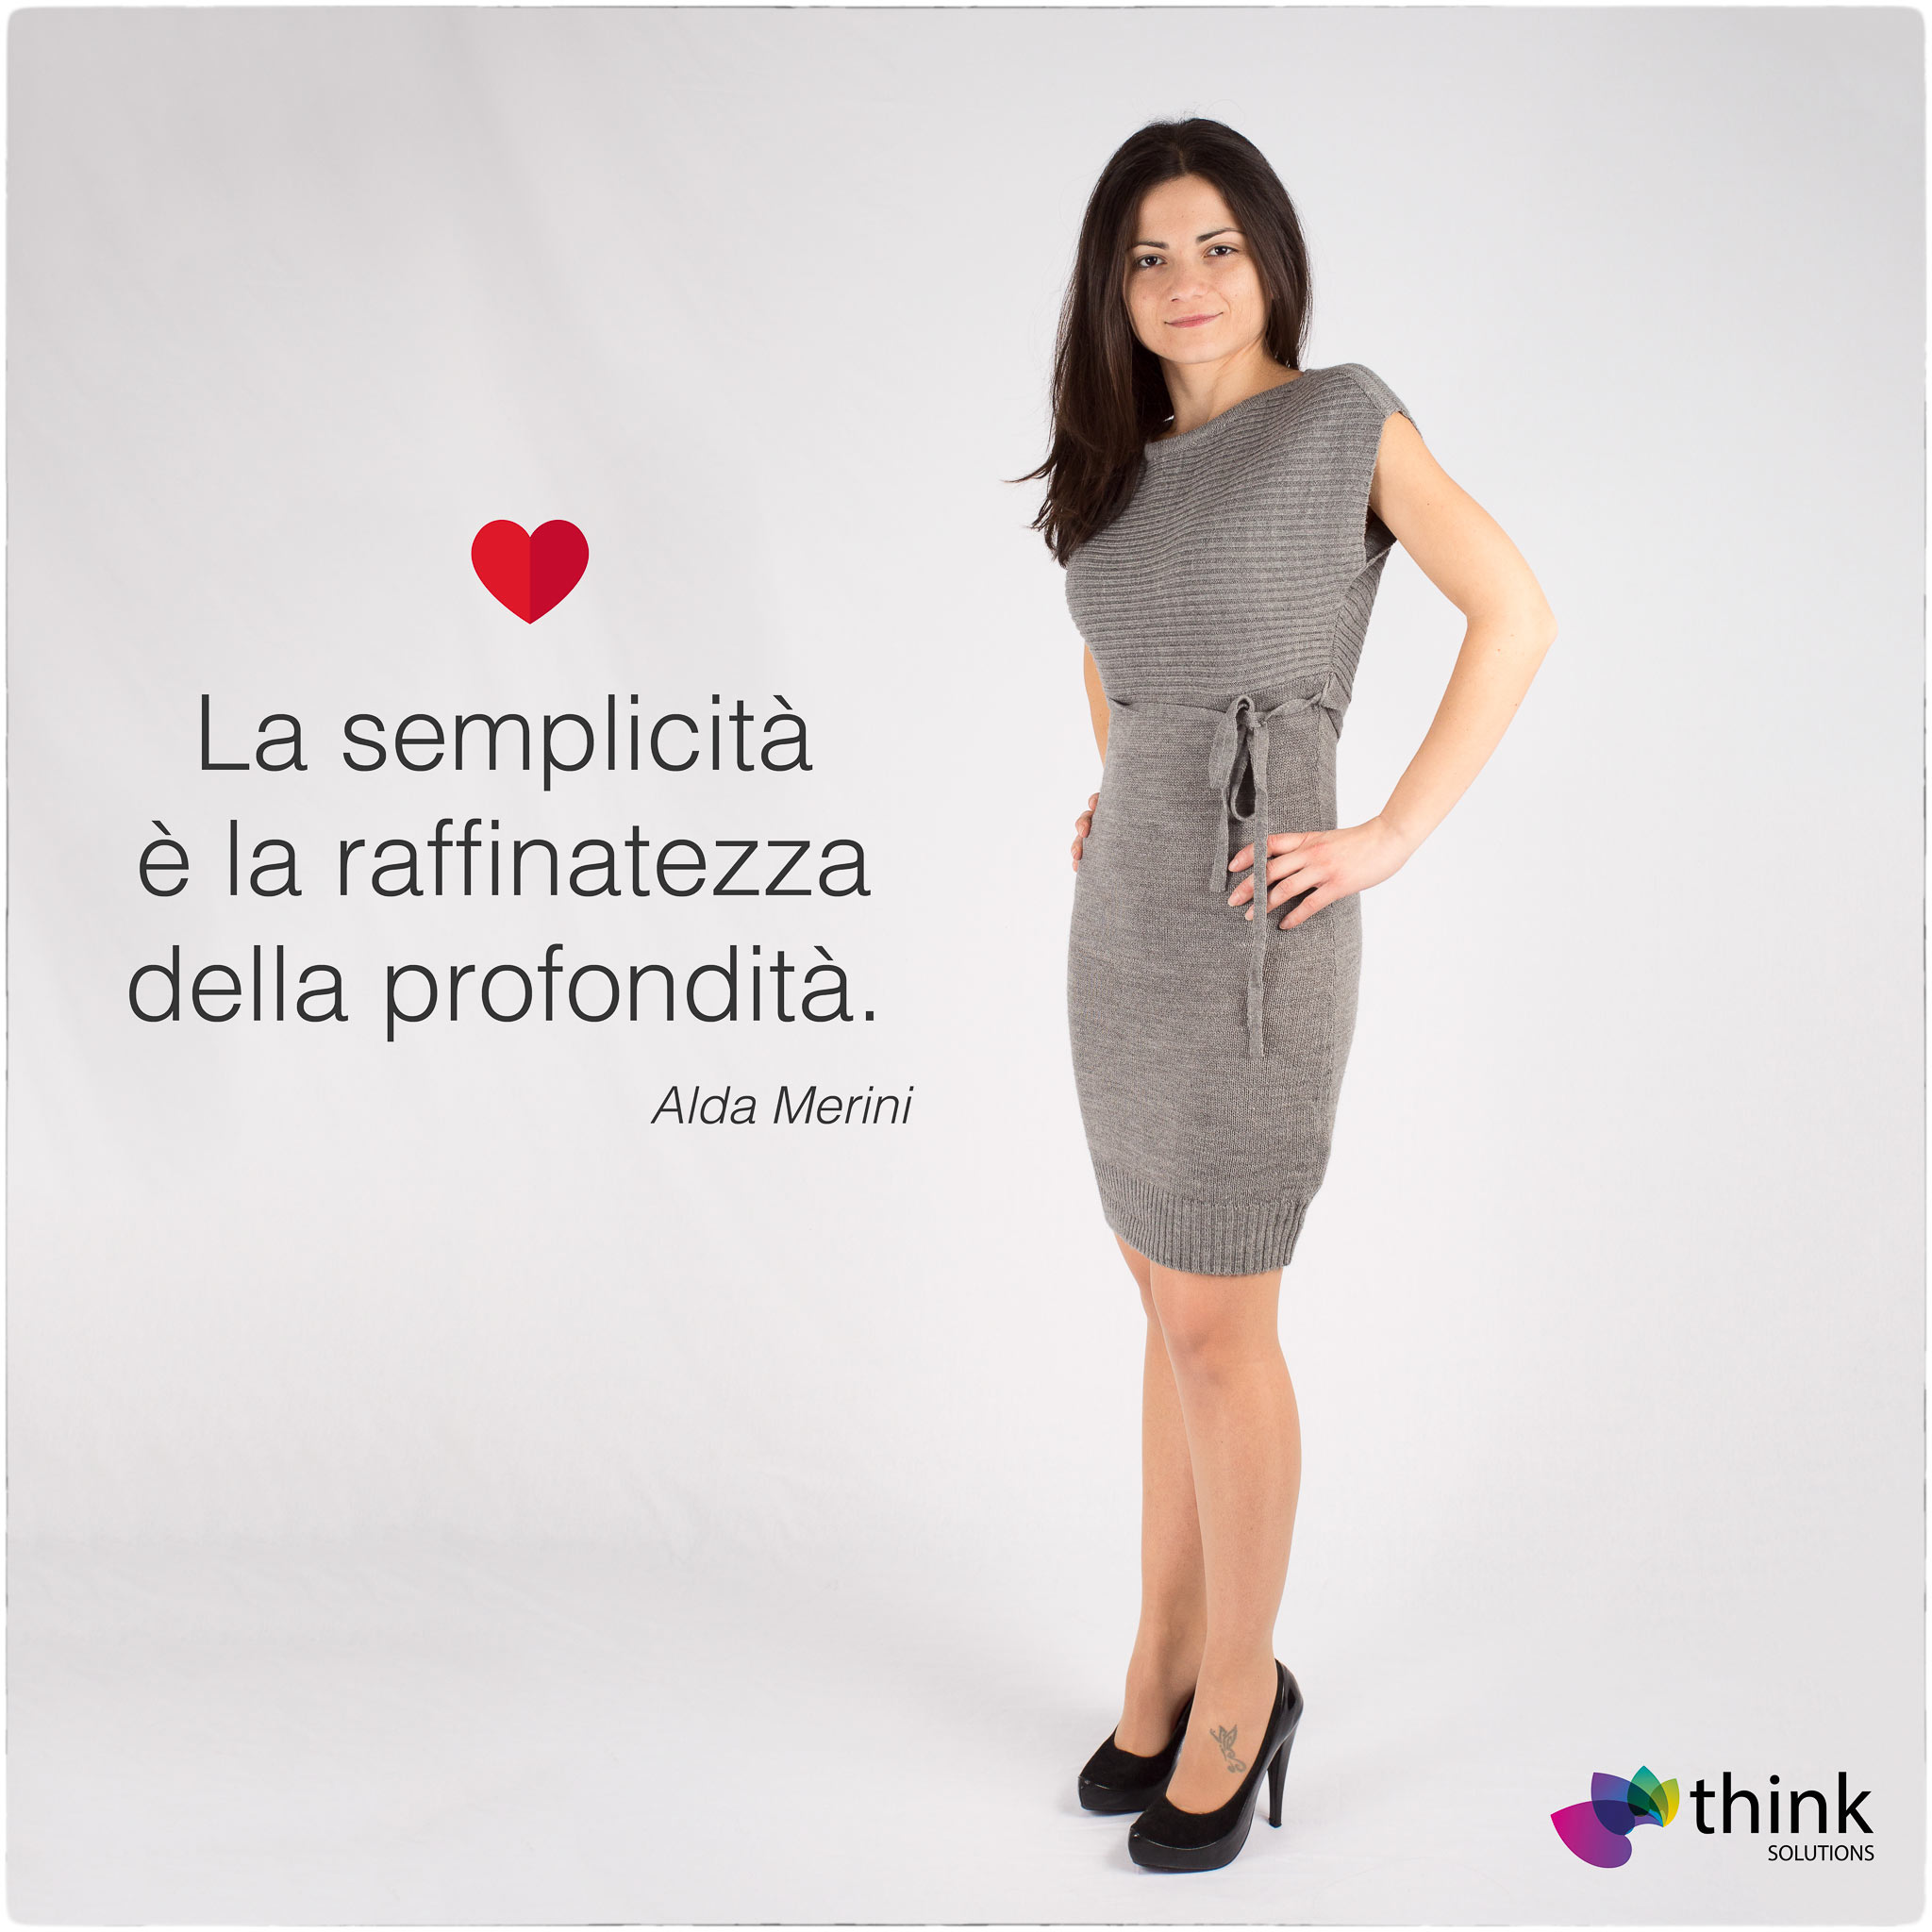 think solutions fotografia ritratti studio